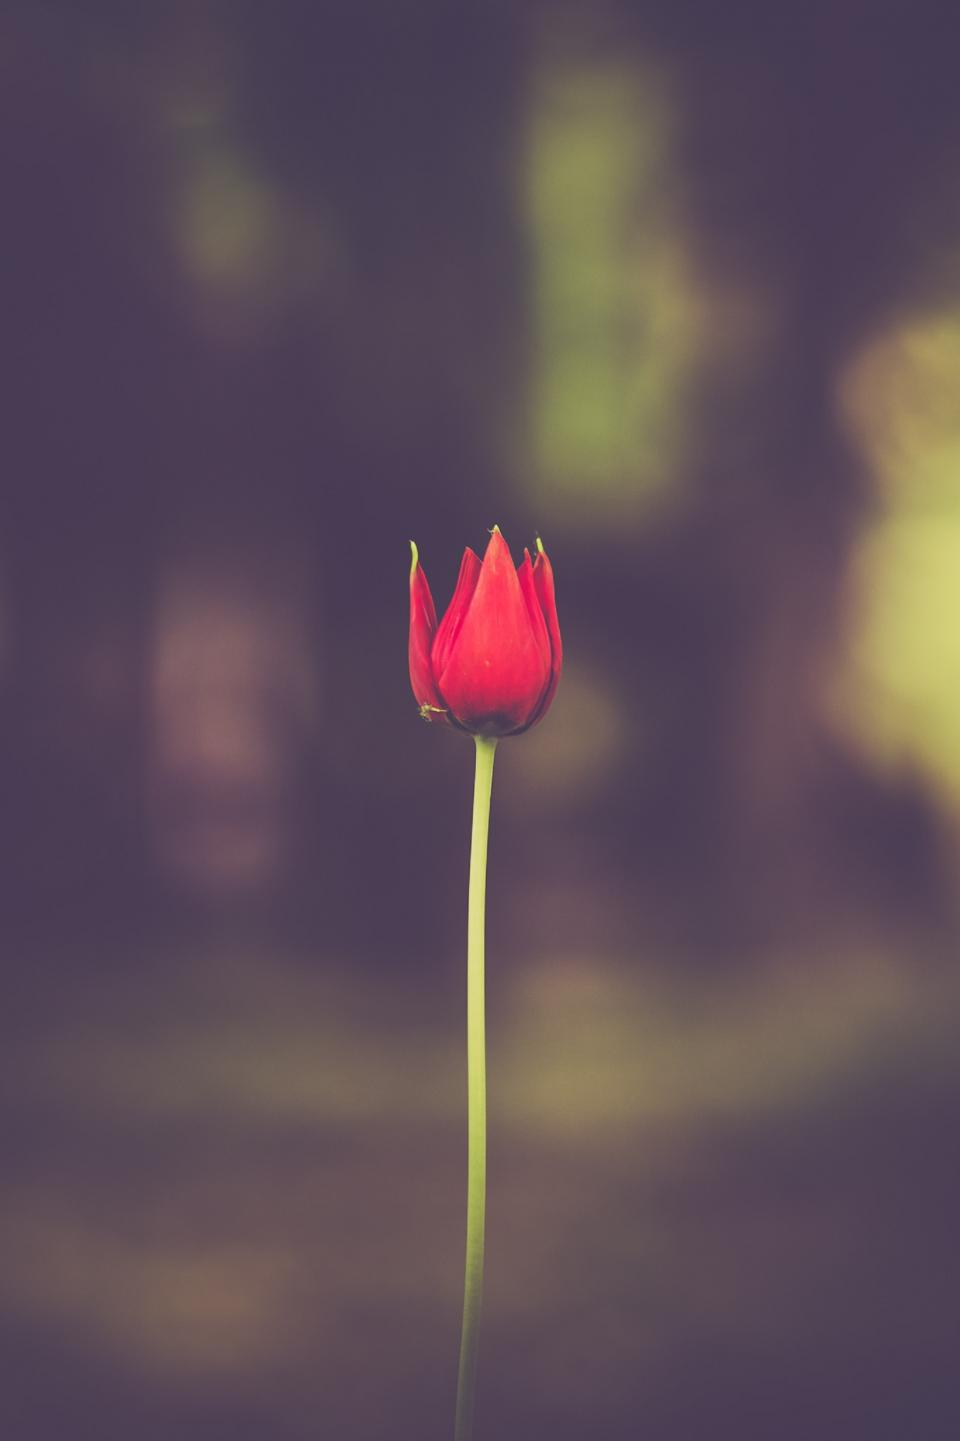 flowers nature blossoms red stalk stem petals macro still bokeh romance